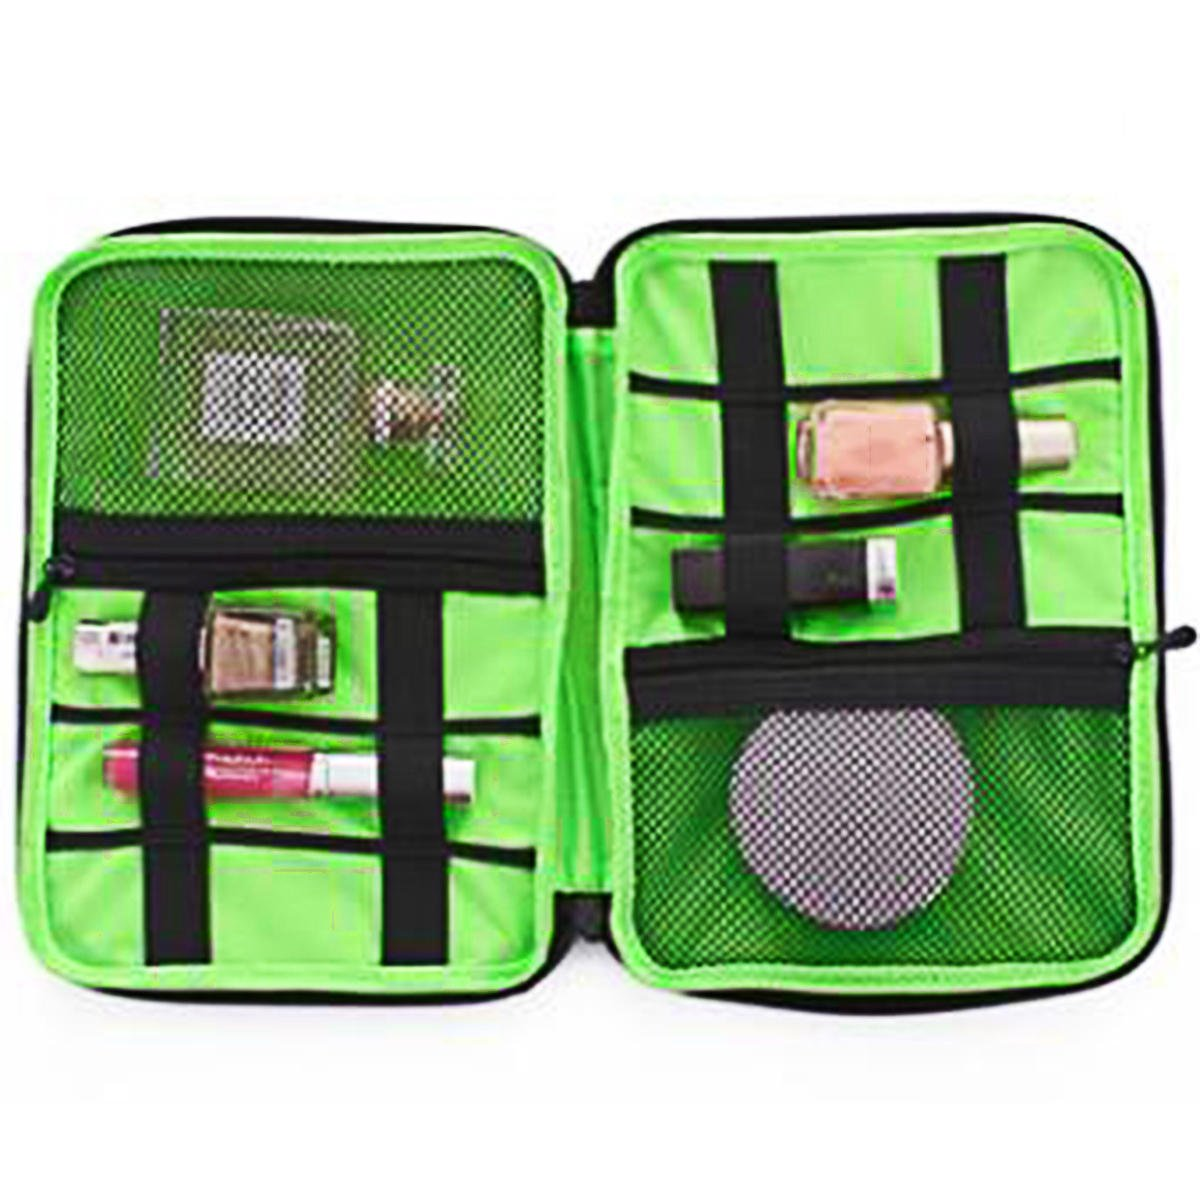 Rainproof Toilet Article Suitcase - Travel Cosmetic Bag Toiletry Portable Makeup Storage Woman Organizer Necessary - Cup Tea Traveling Udder Pocketbook Tight Purse Raincoat - 1PCs